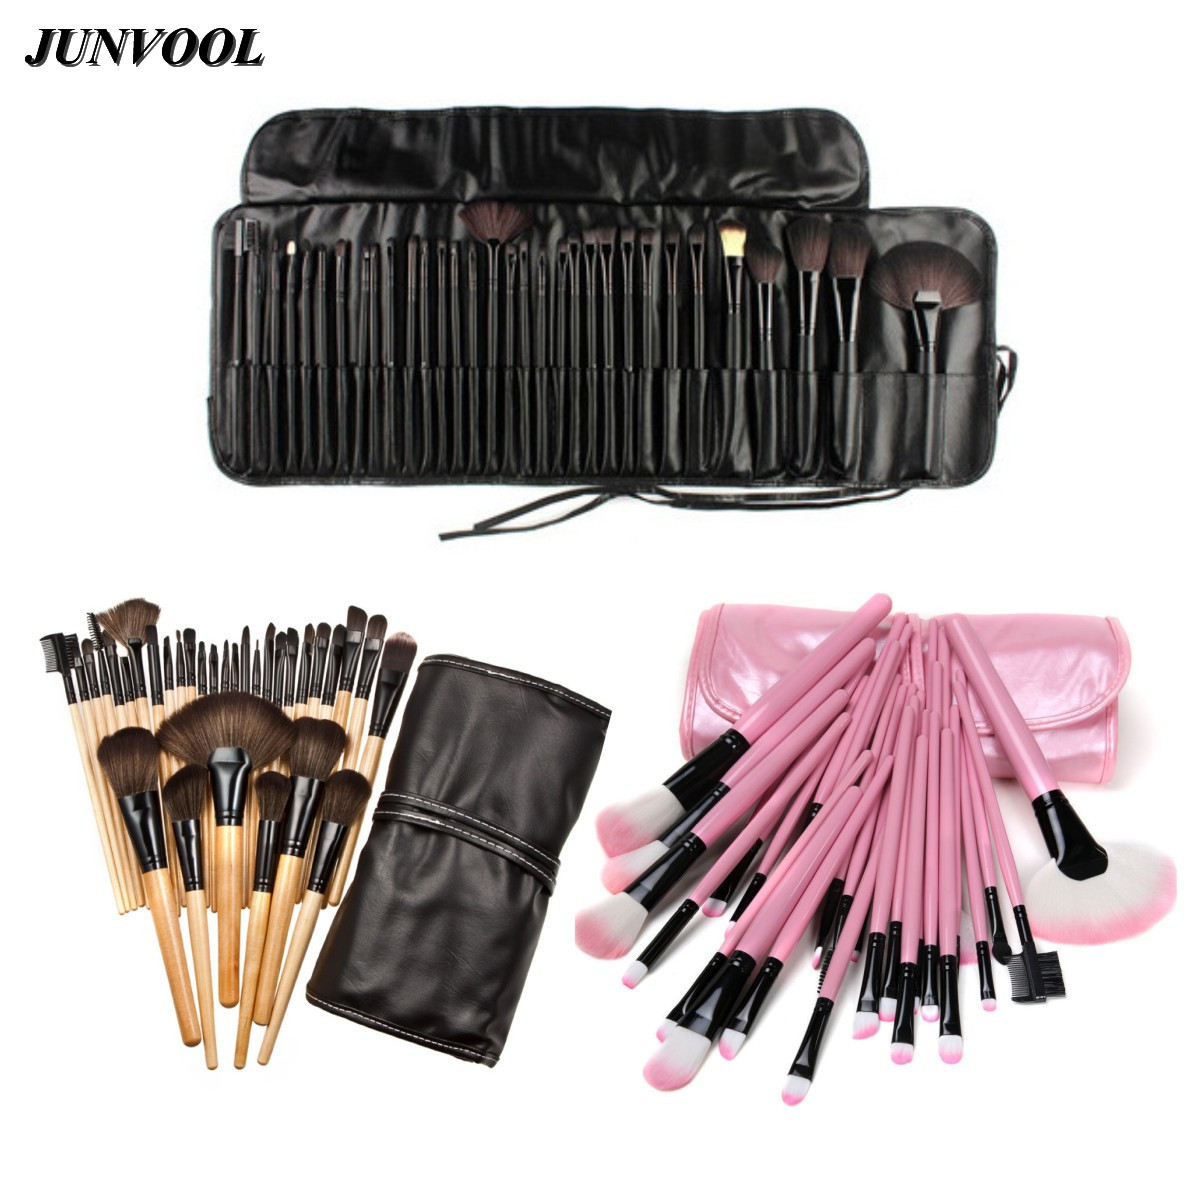 32pcs Mini Pro Makeup Brushes Set&Ke Soft Synthetic Hair Make Up Tools Cosmetic Beauty Pink Wood Black Brush+ 1 Leather Bag Case best quality fast shipping 15 pcs soft synthetic hair make up tools kit cosmetic beauty makeup brush black set with leather case